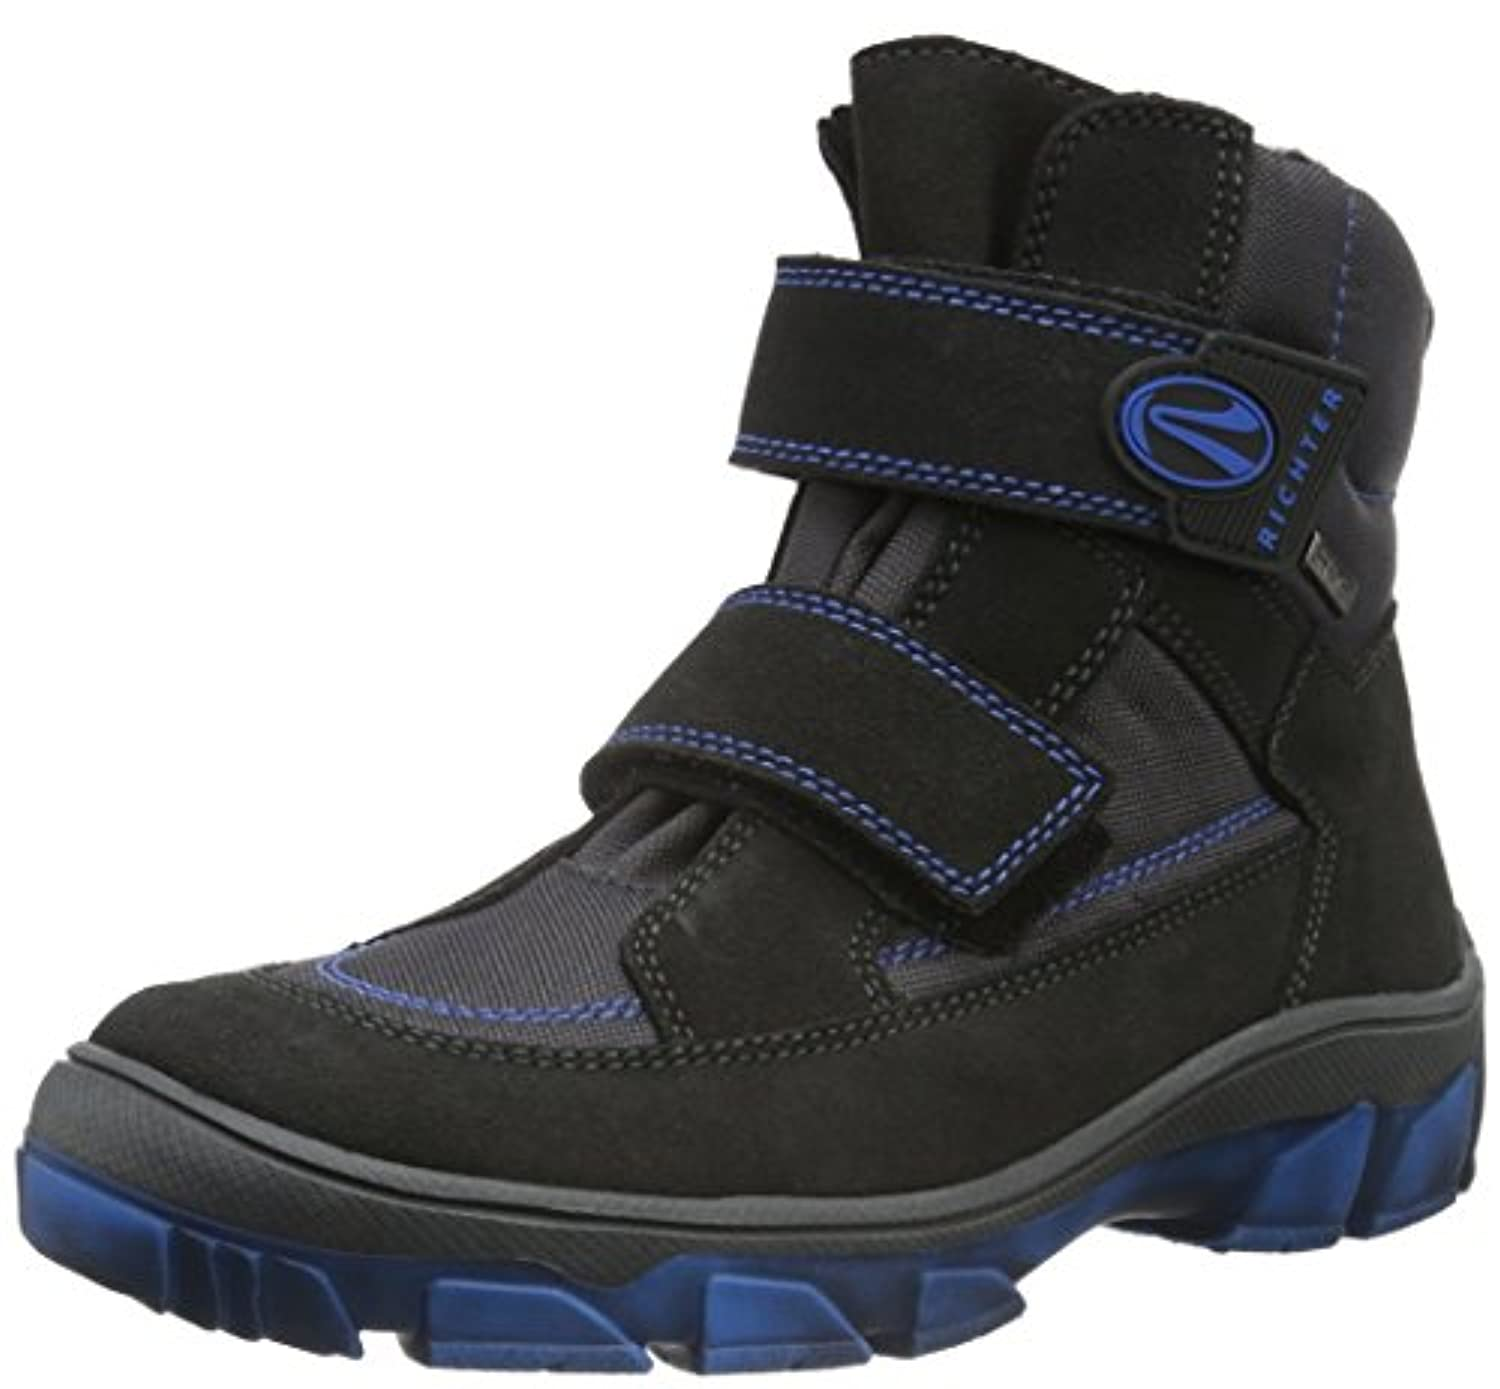 Richter Kinderschuhe Boys' Kite Warm-Lined Short-Shaft Boots and Bootees Blue Size: 1